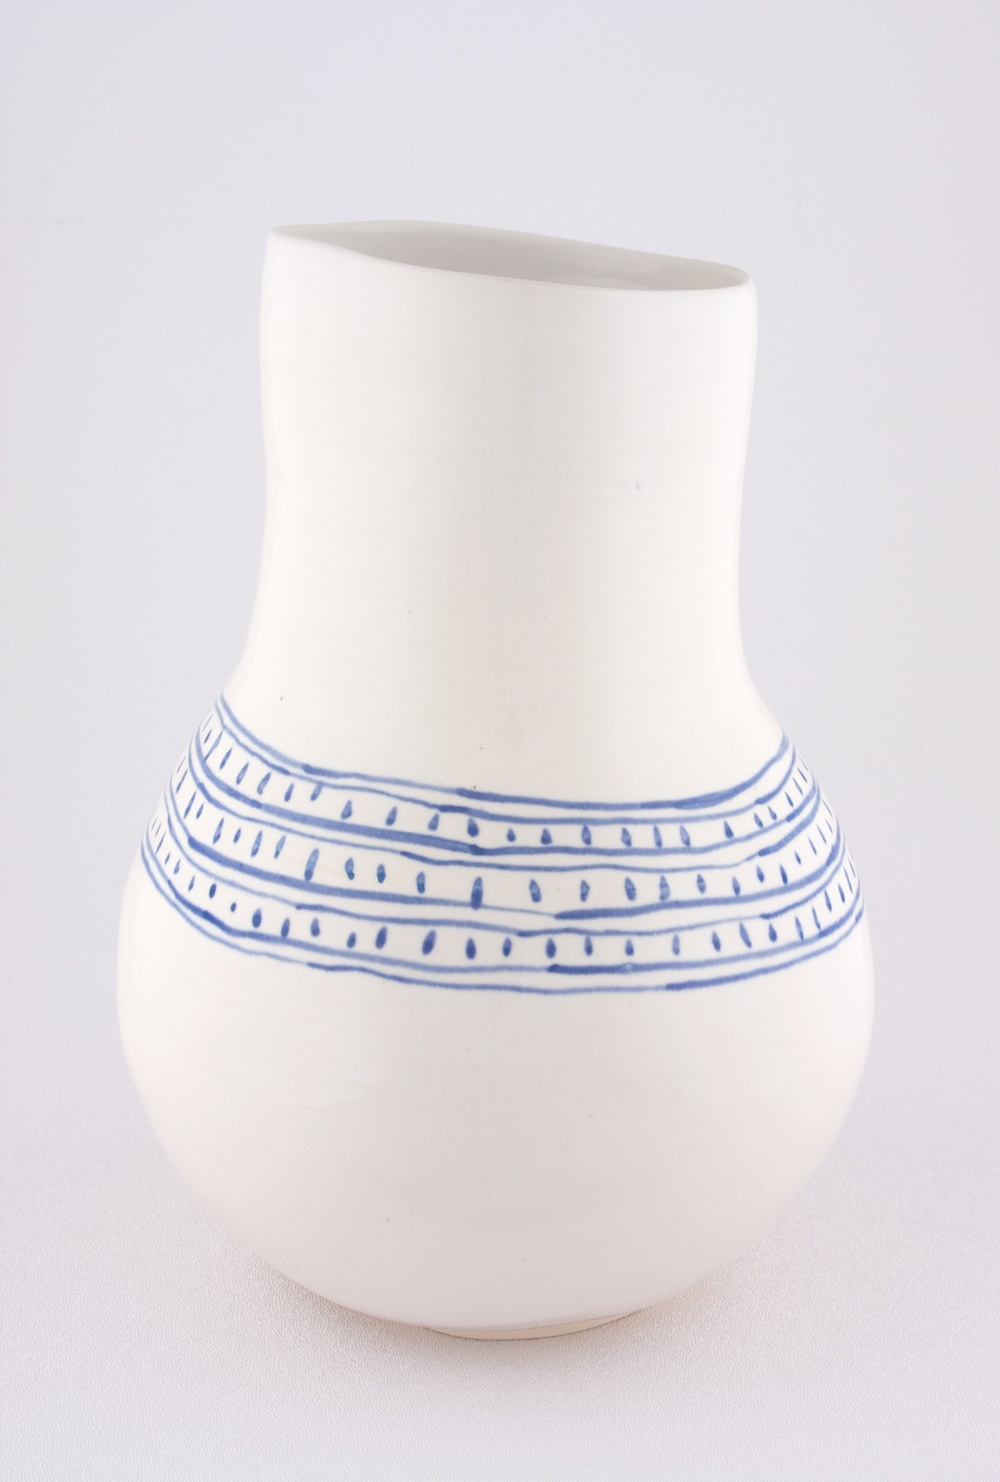 "Shio Kusaka Untitled (blue line and dot) 2009 Porcelain 9 3/4"" x 7"" SK055"